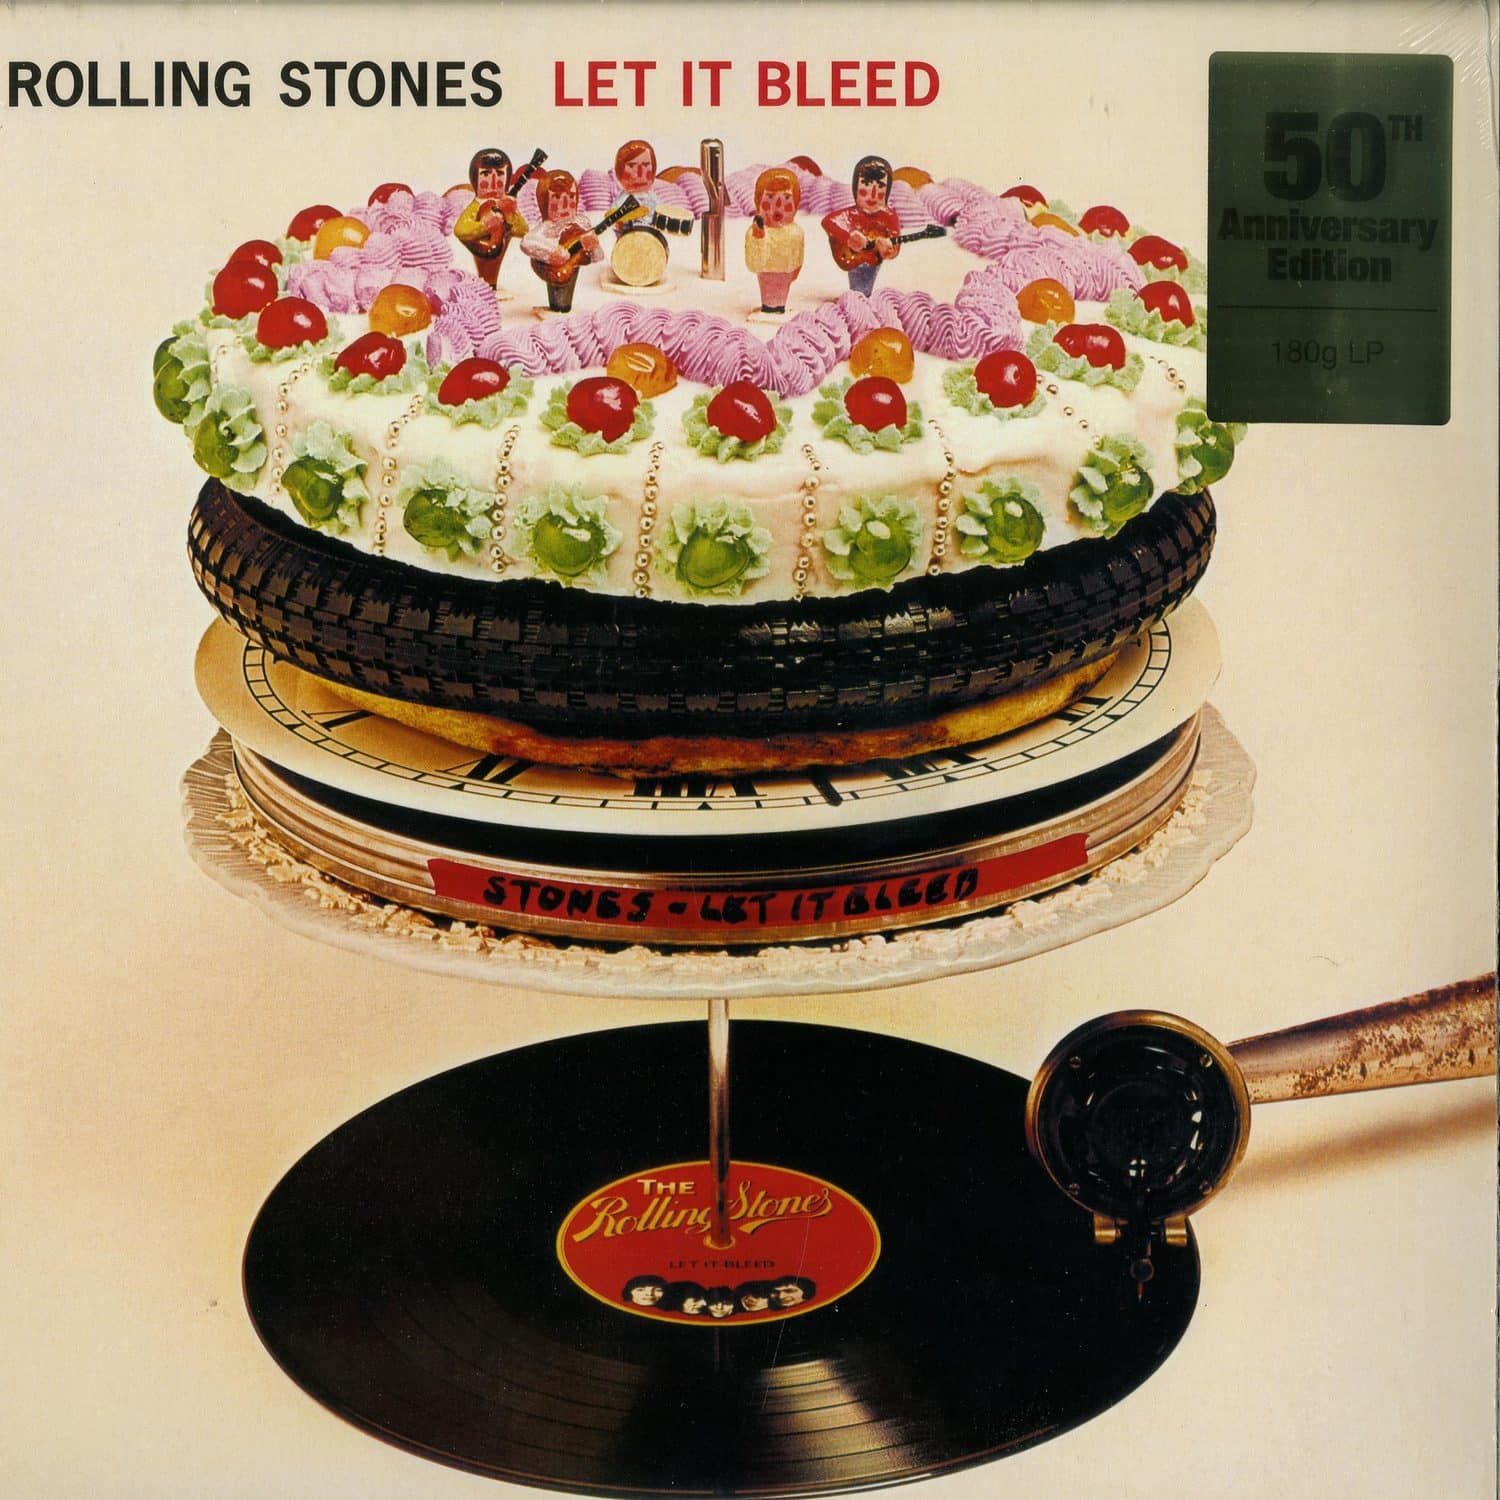 The Rolling Stones - LET IT BLEED - 50TH ANNIVERSARY